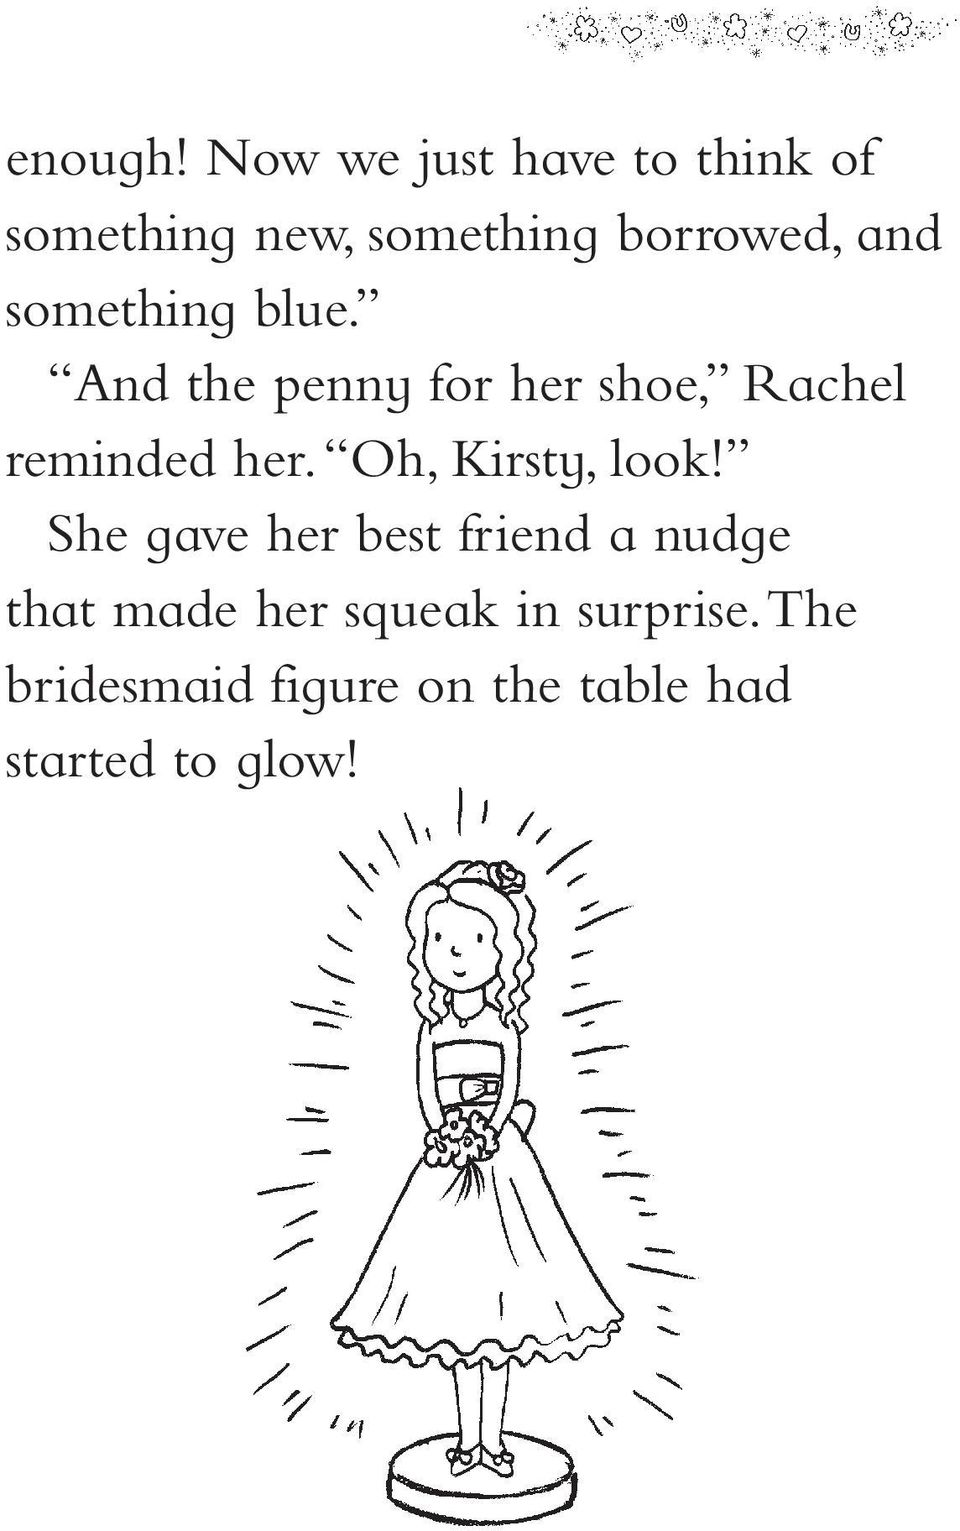 something blue. And the penny for her shoe, Rachel reminded her.